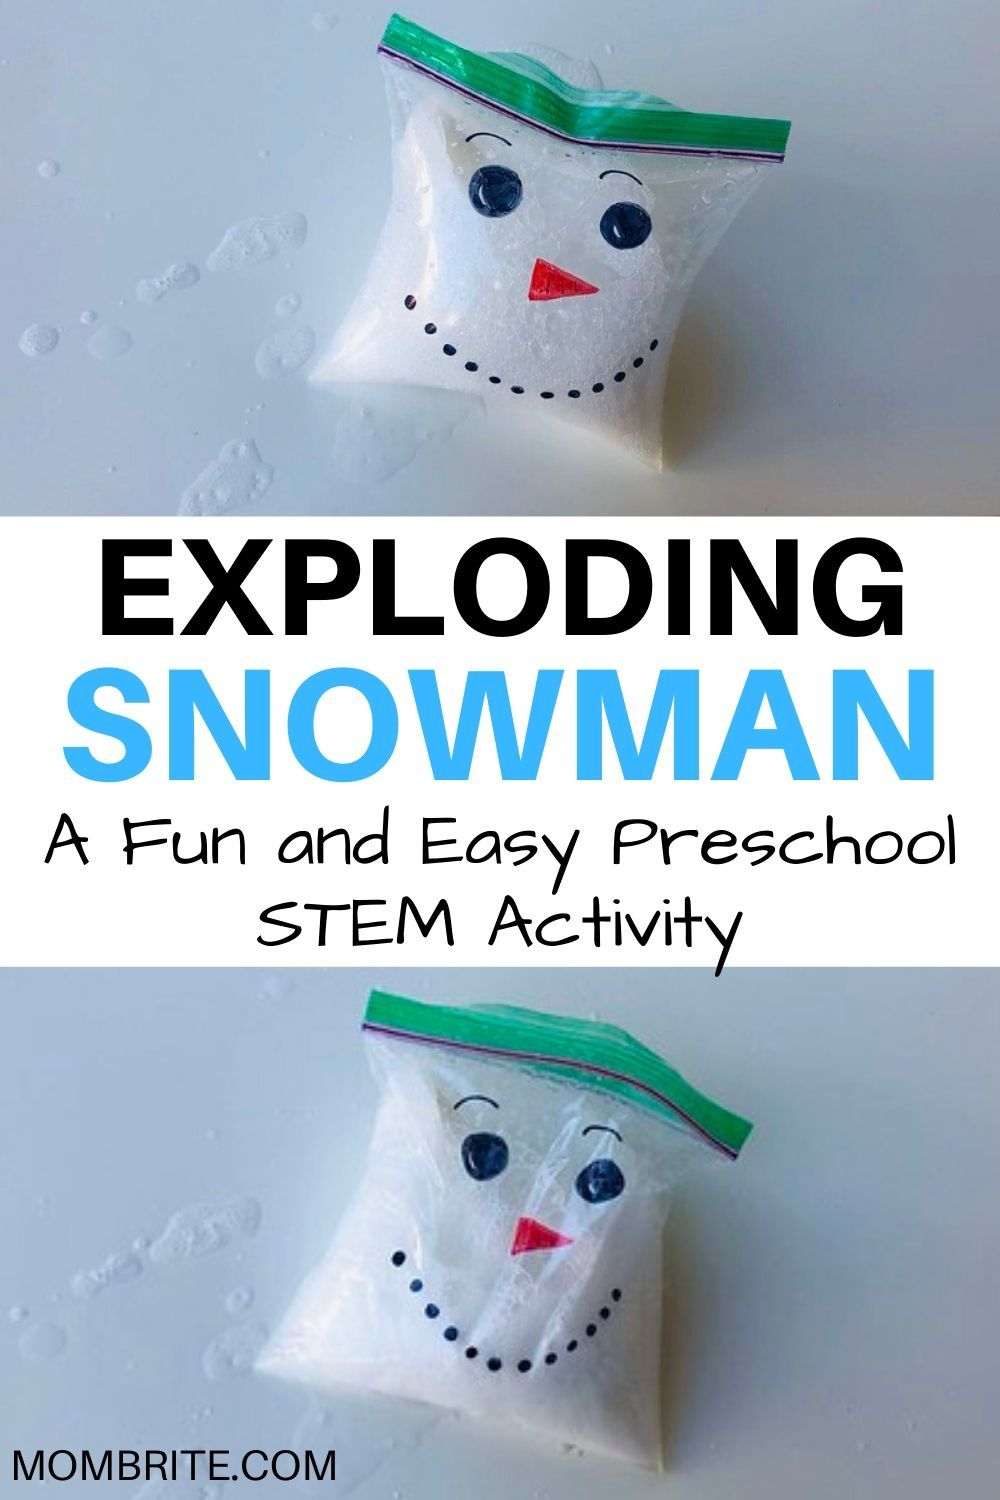 The Exploding Snowman Science Experiment #scienceexperimentsforpreschoolers